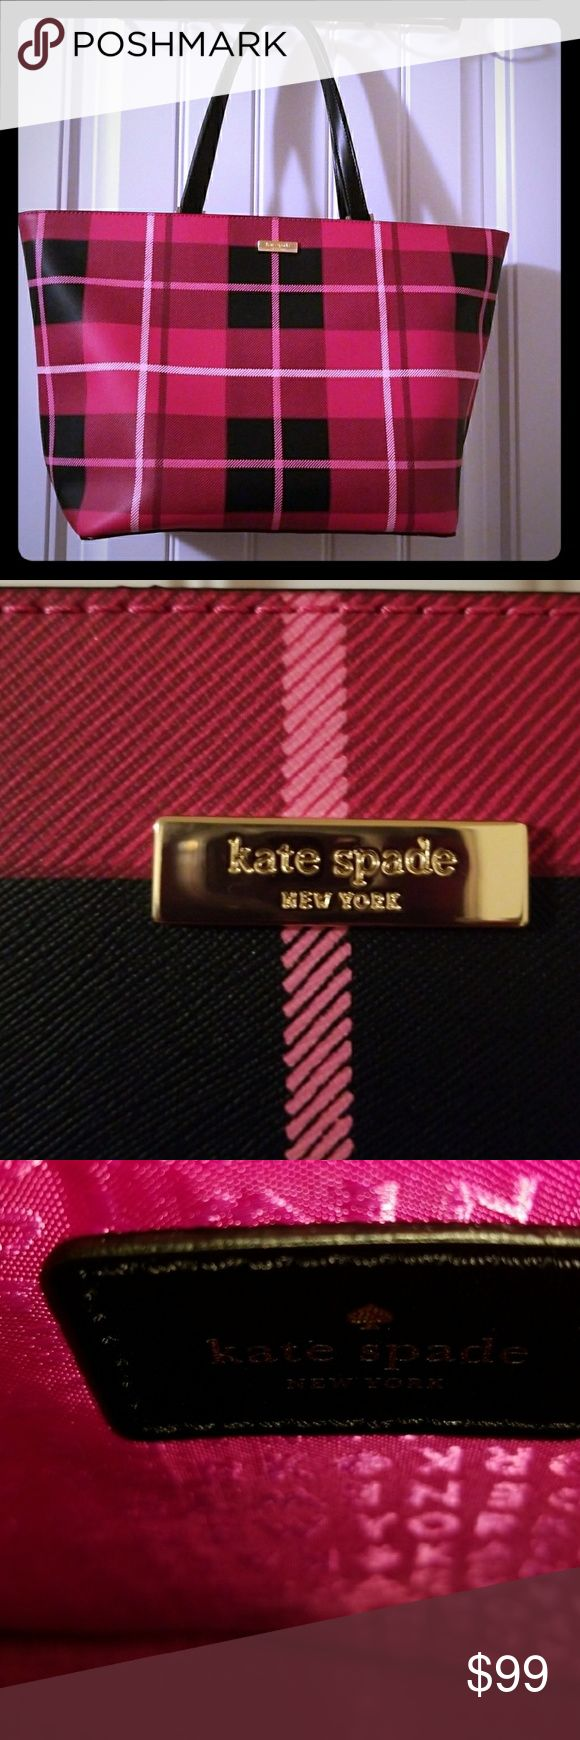 Kate Spade Tote The Katr Spade cutest pink and black  plaid tote bag, hot pink lining, with KS signayure lining, used a few times for work but it was a little too small, like new inside and out. kate spade Bags Totes